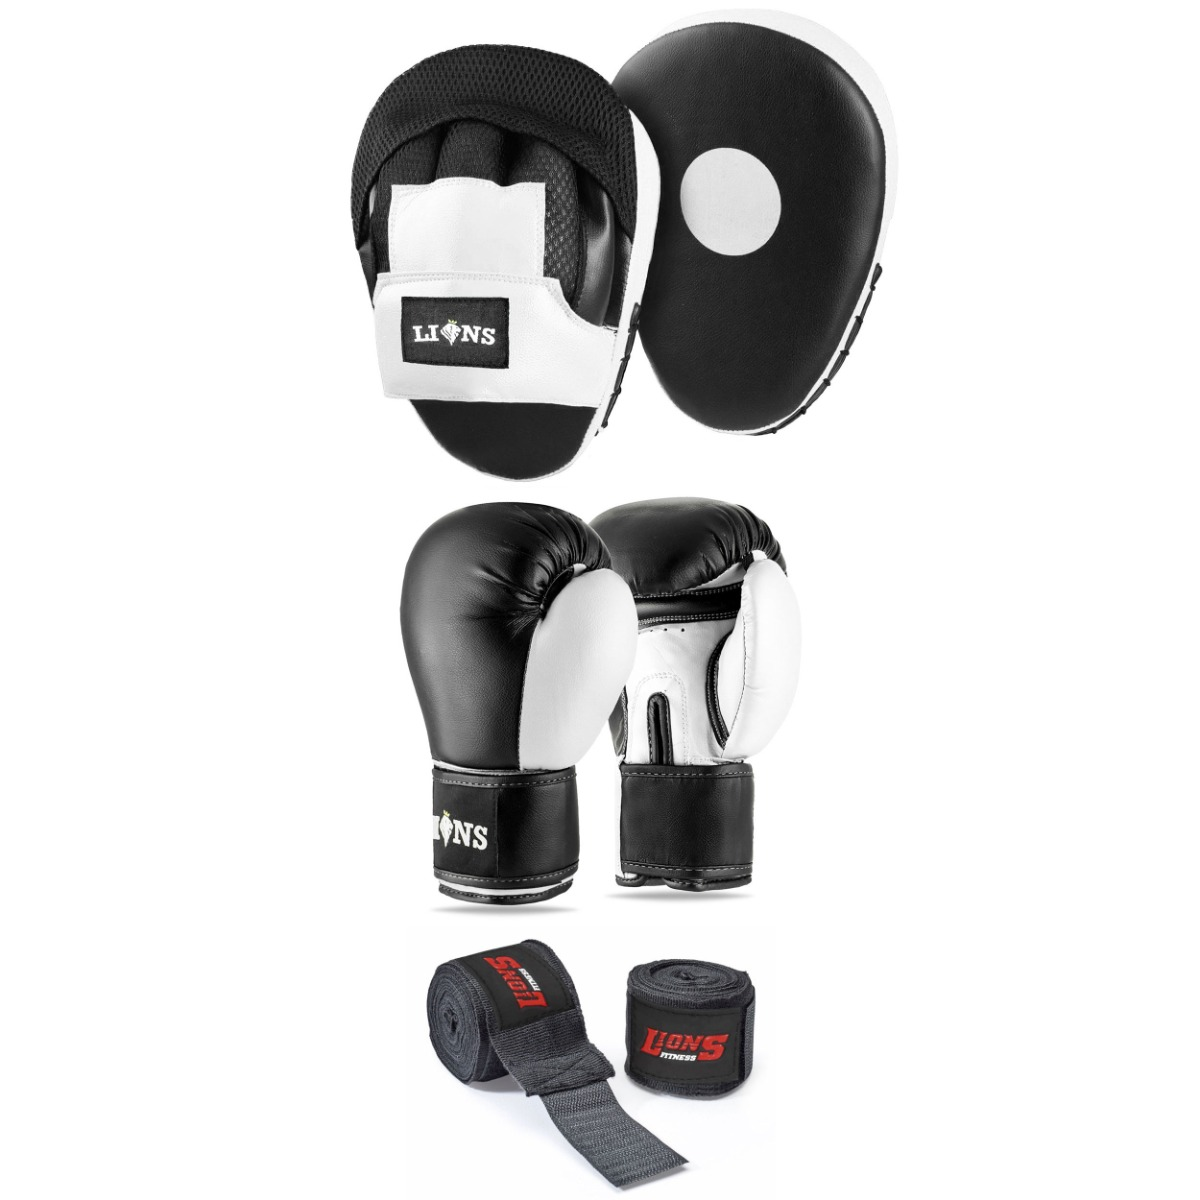 Lions Classic Adult Unisex Boxing Gloves and Curved Hook and Jab Focus Pads Set